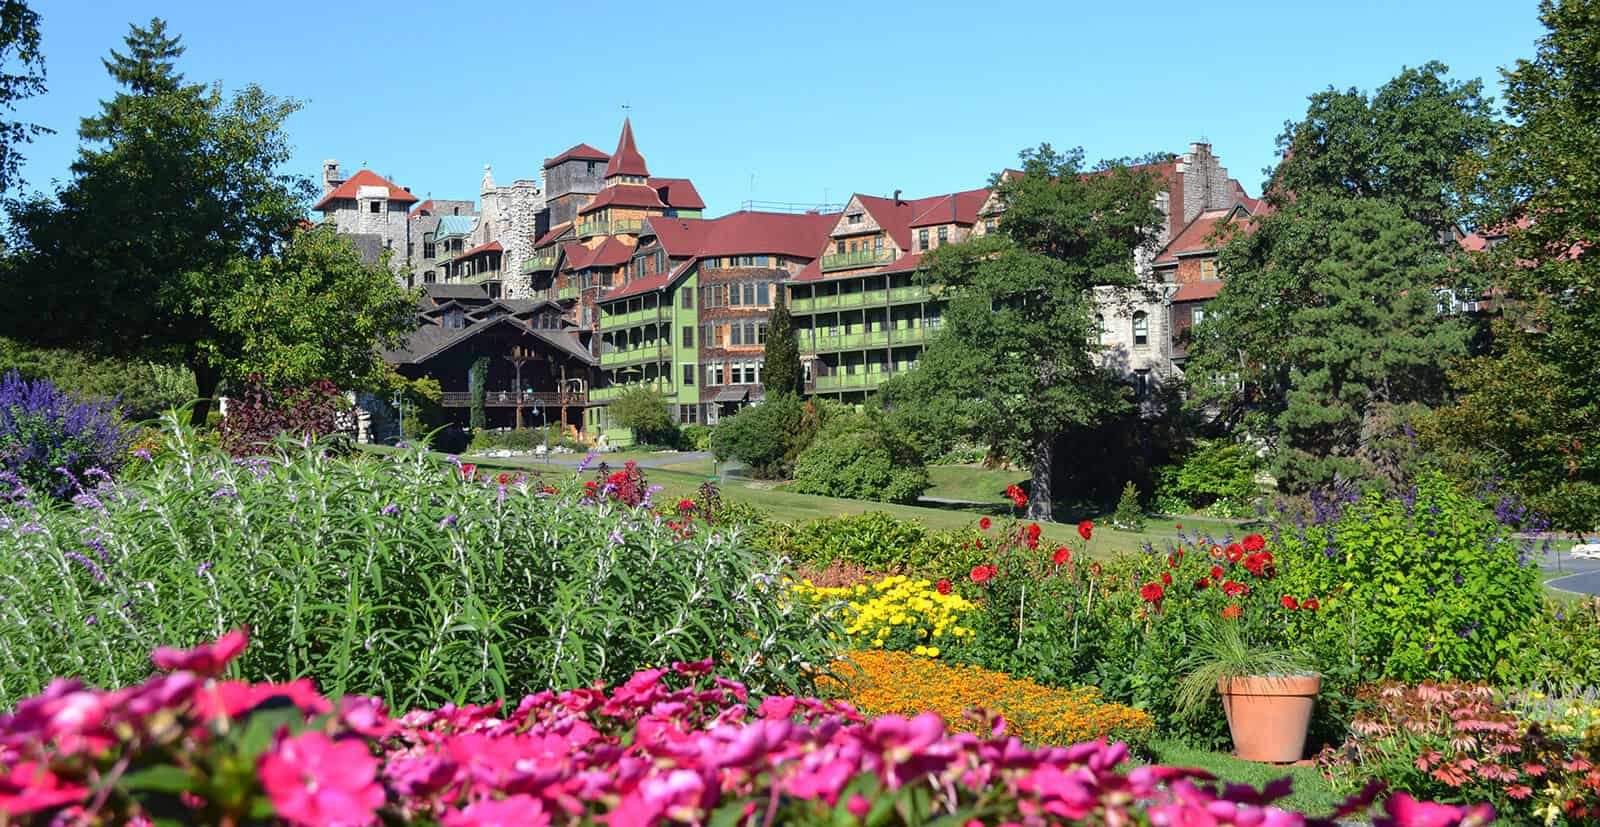 Mohonk garden blooming in Spring